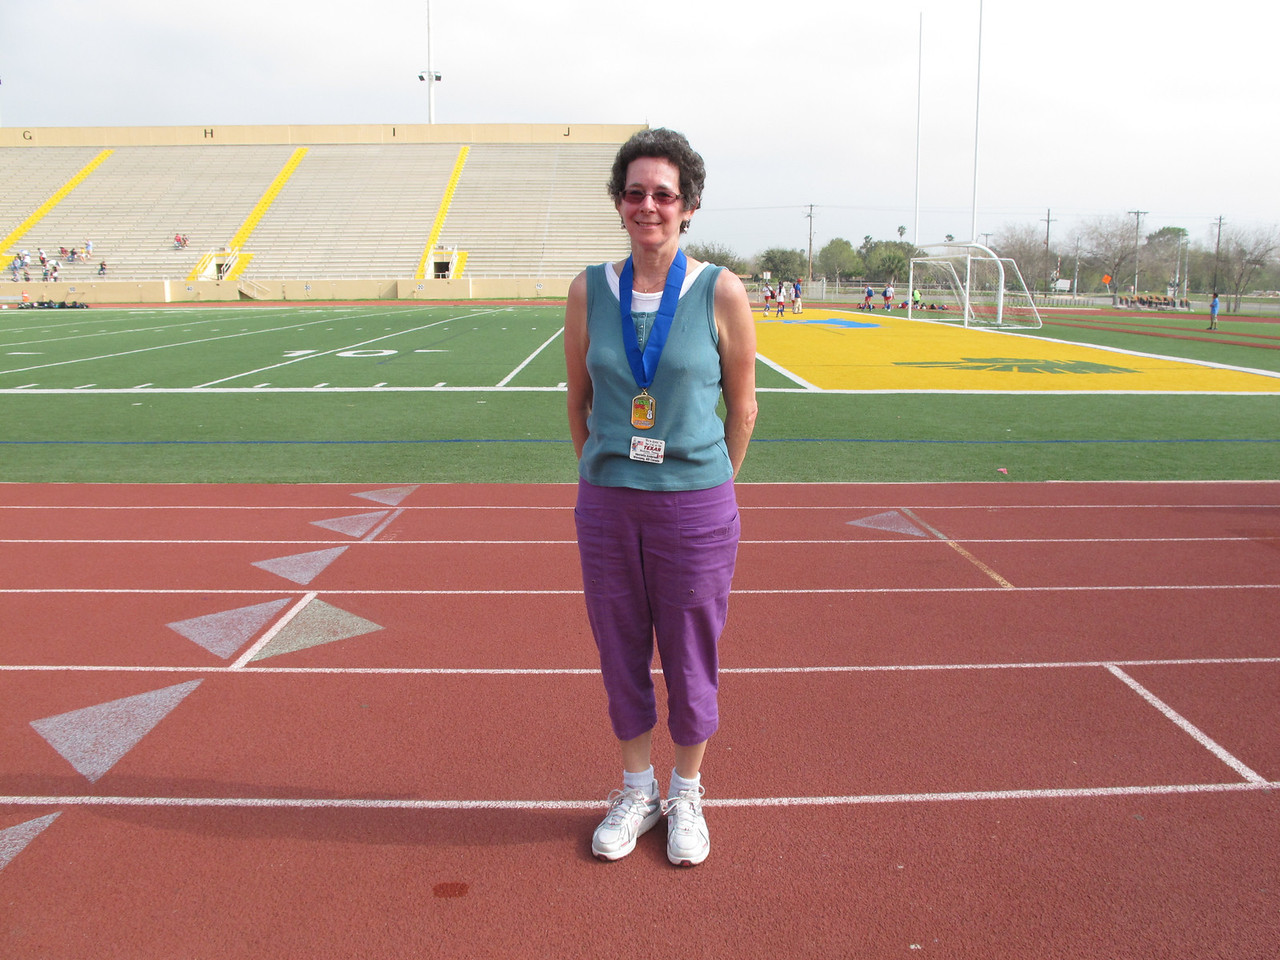 Racewalk Women 60-64 1st Place - Henrietta Anderson (Texan Mobile) Not Pictured 2nd Place - Kathryn Banks (Tropic Star), 3rd Place - Kathleen Cornwell (Tropic Star)